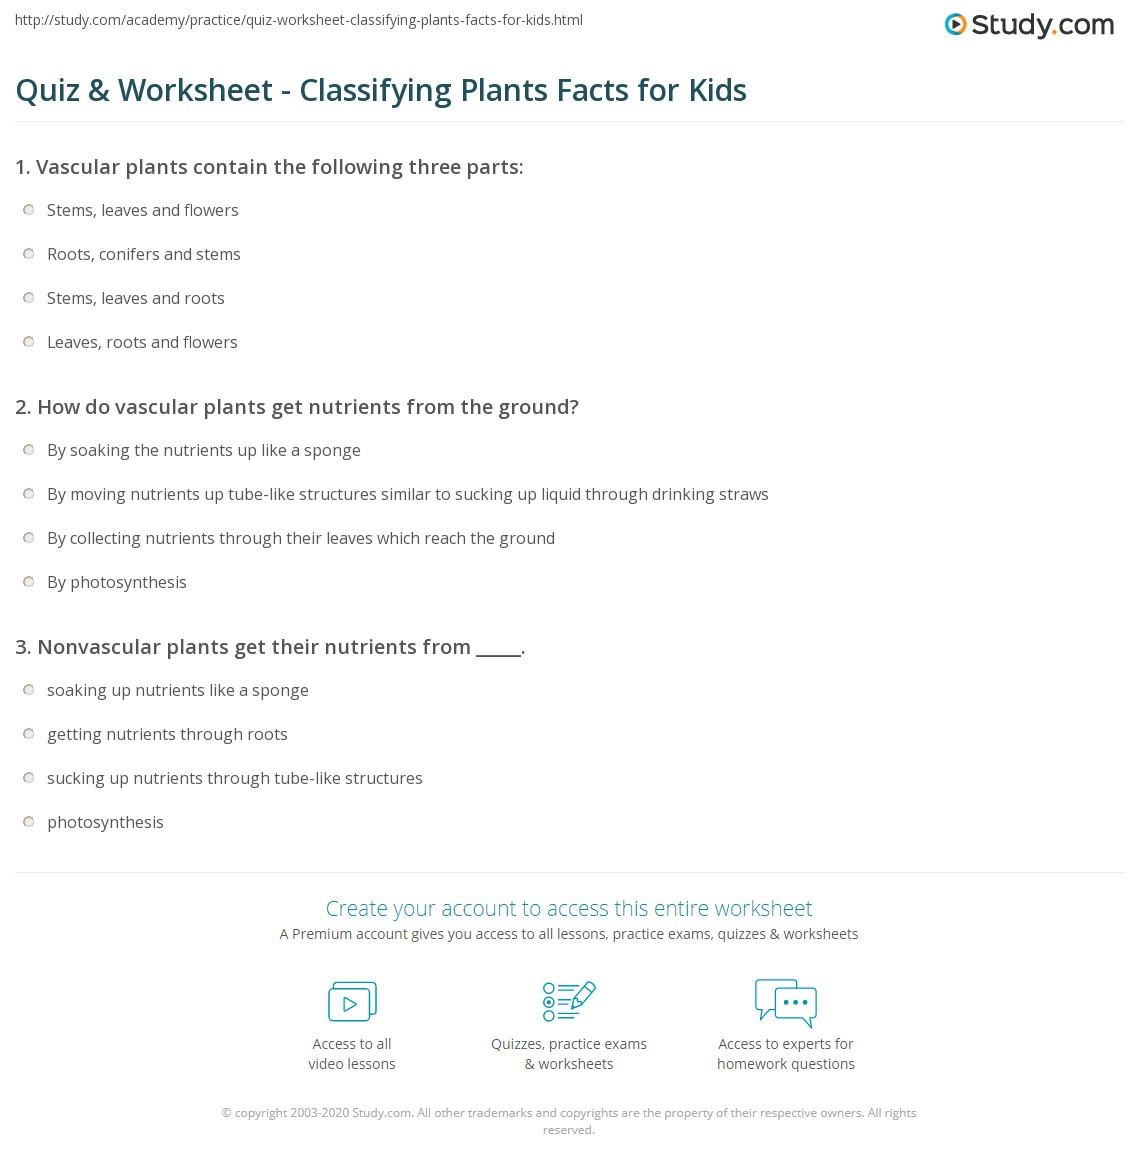 quiz worksheet classifying plants facts for kids